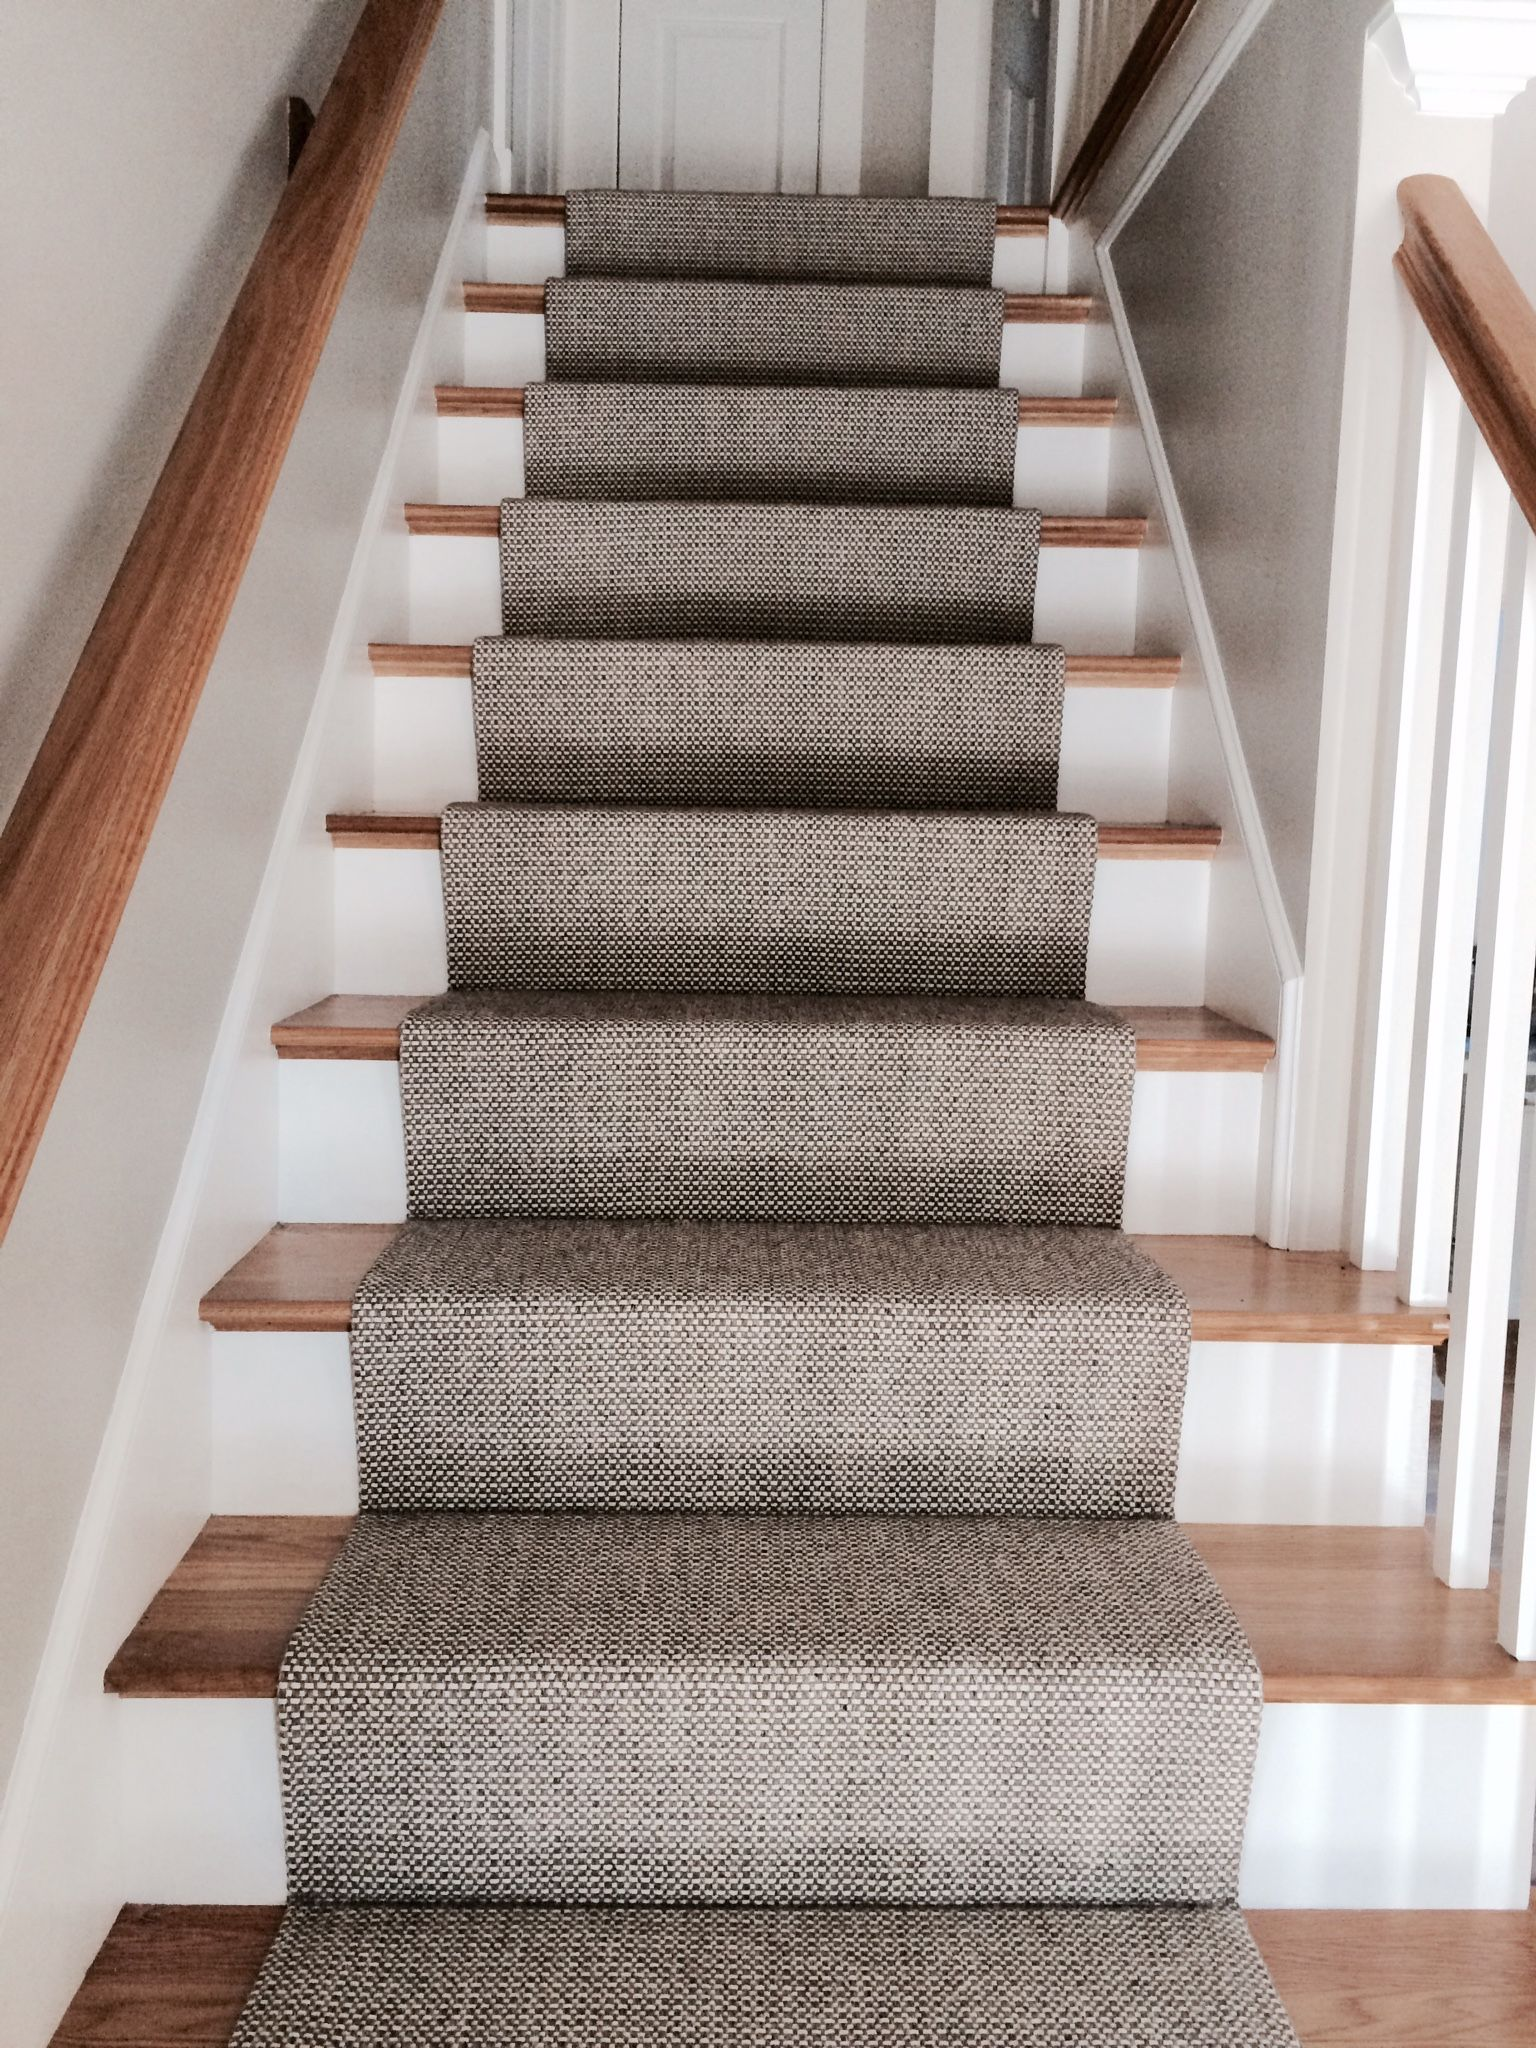 Carpet runner stair runner made of woven wool that we made with a fold and stitch XIJKLDG